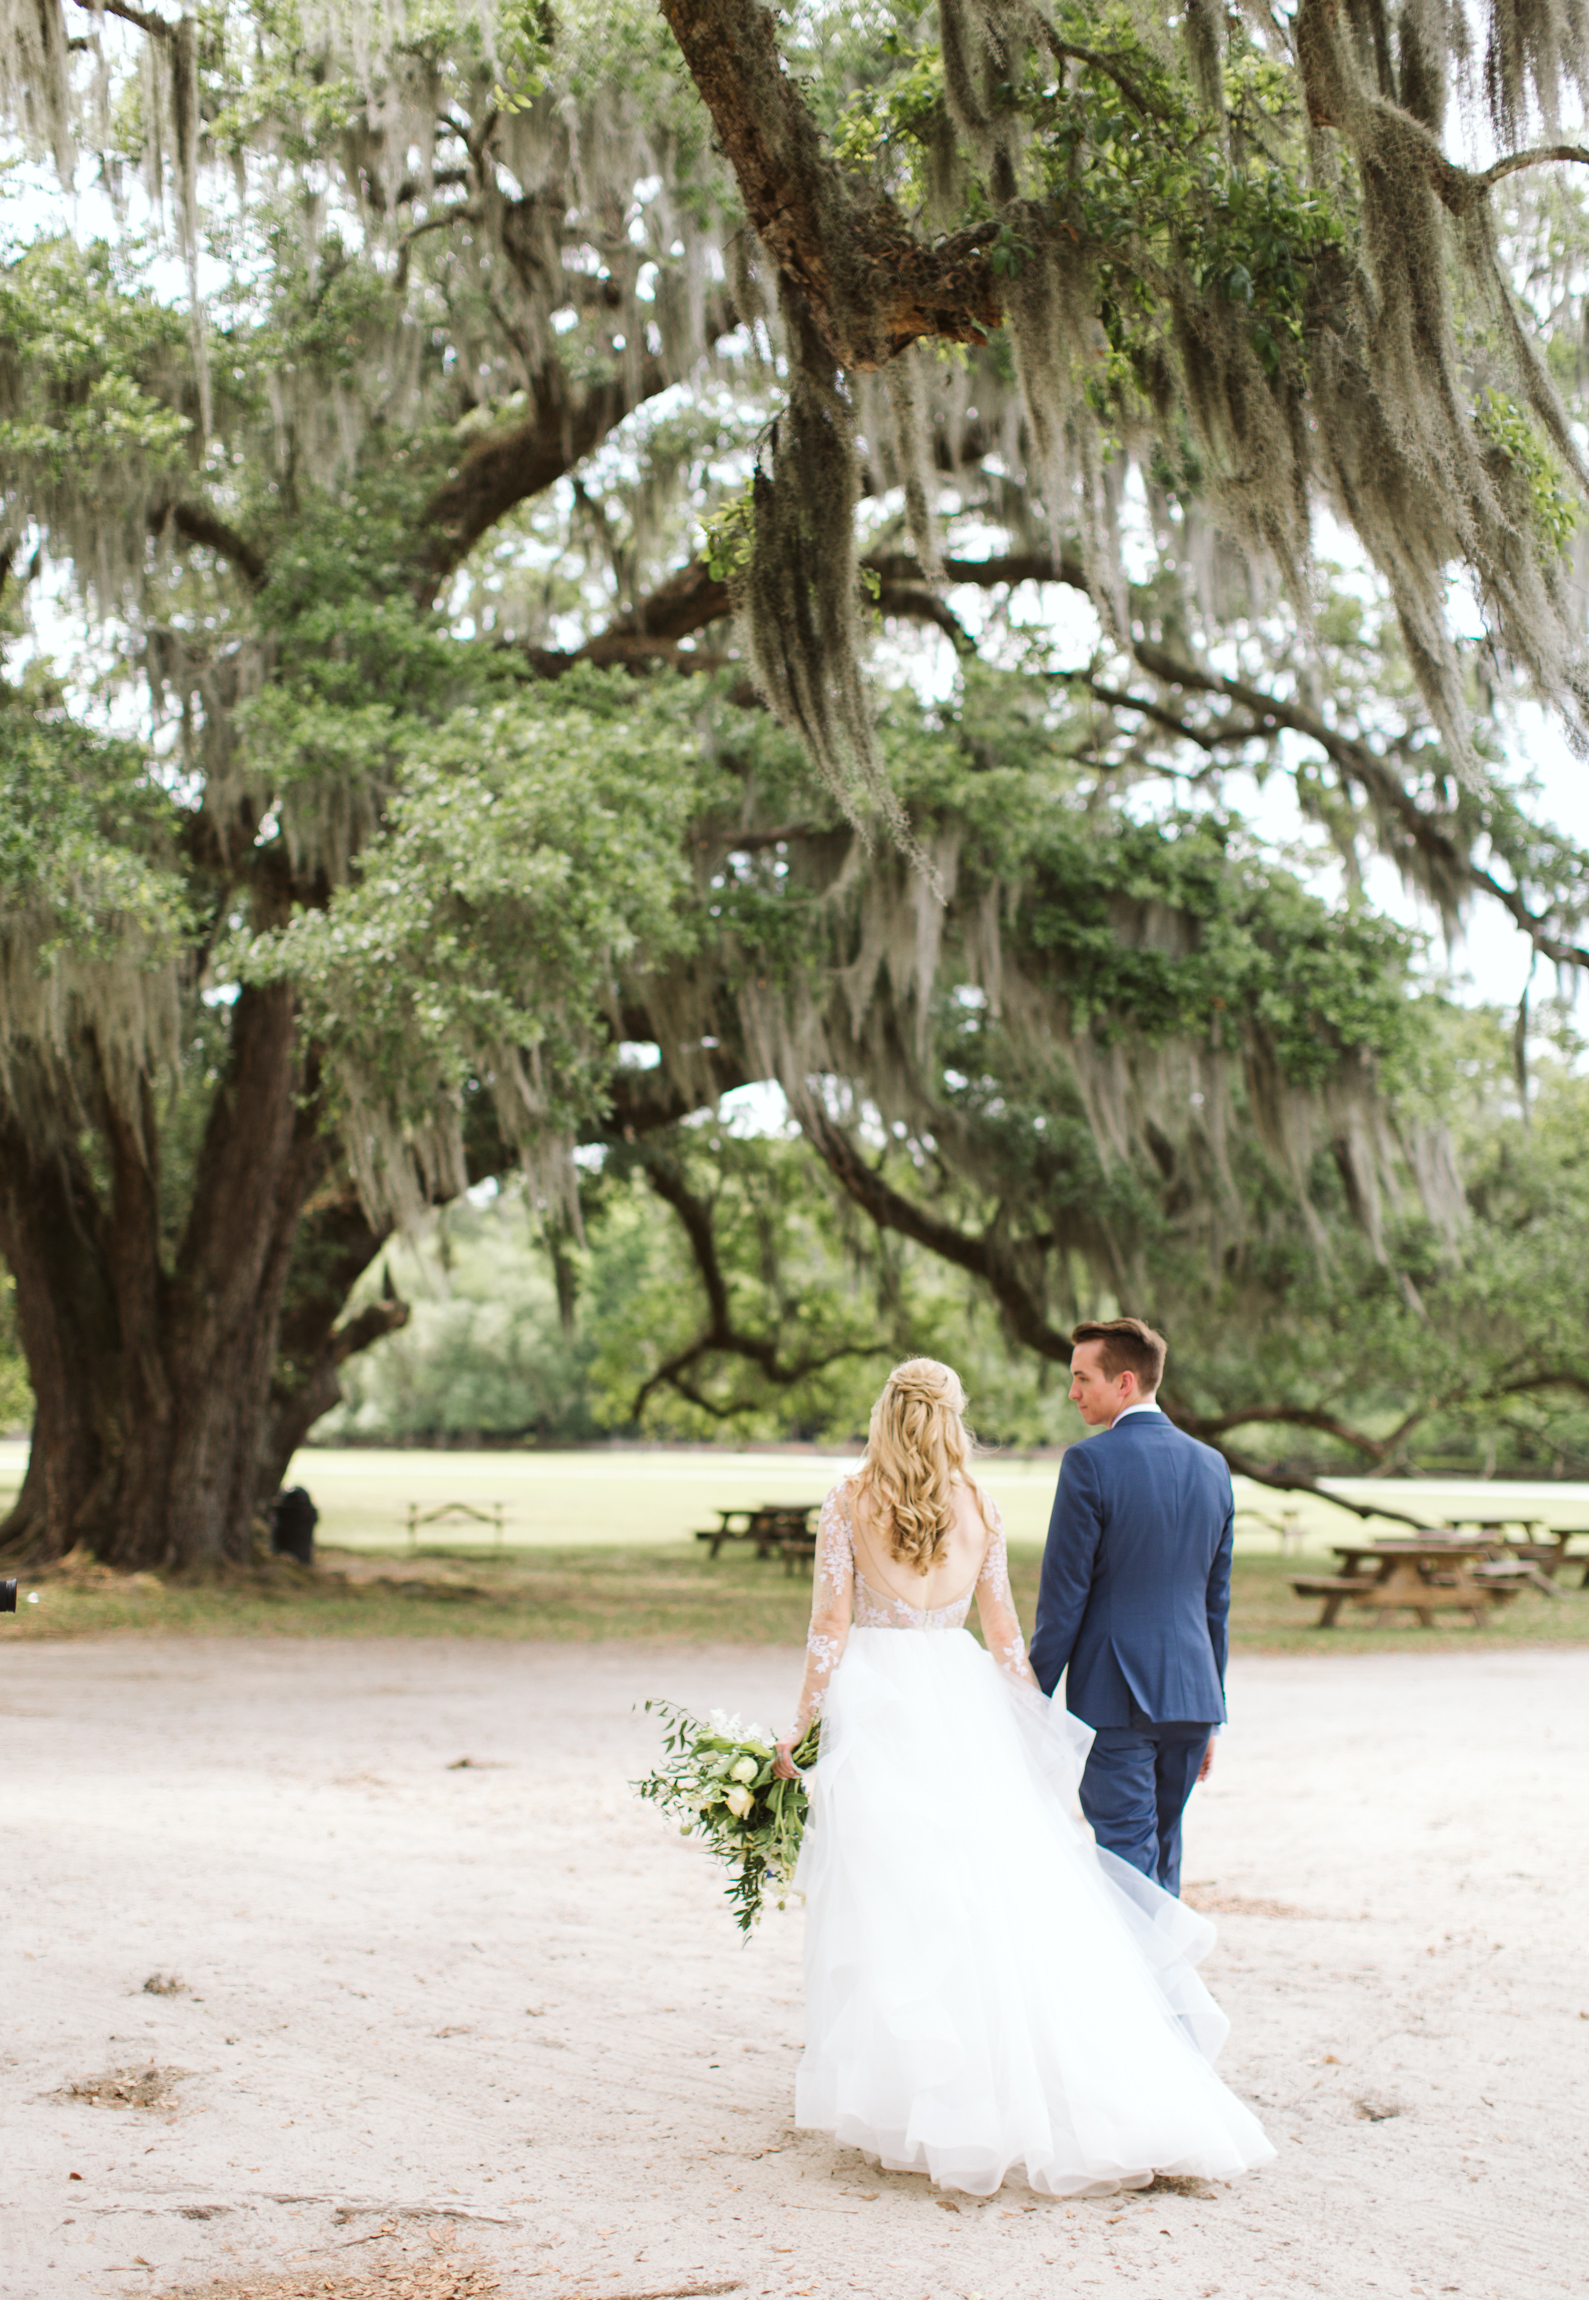 Middleton Place Charleston SC wedding-2703.jpg